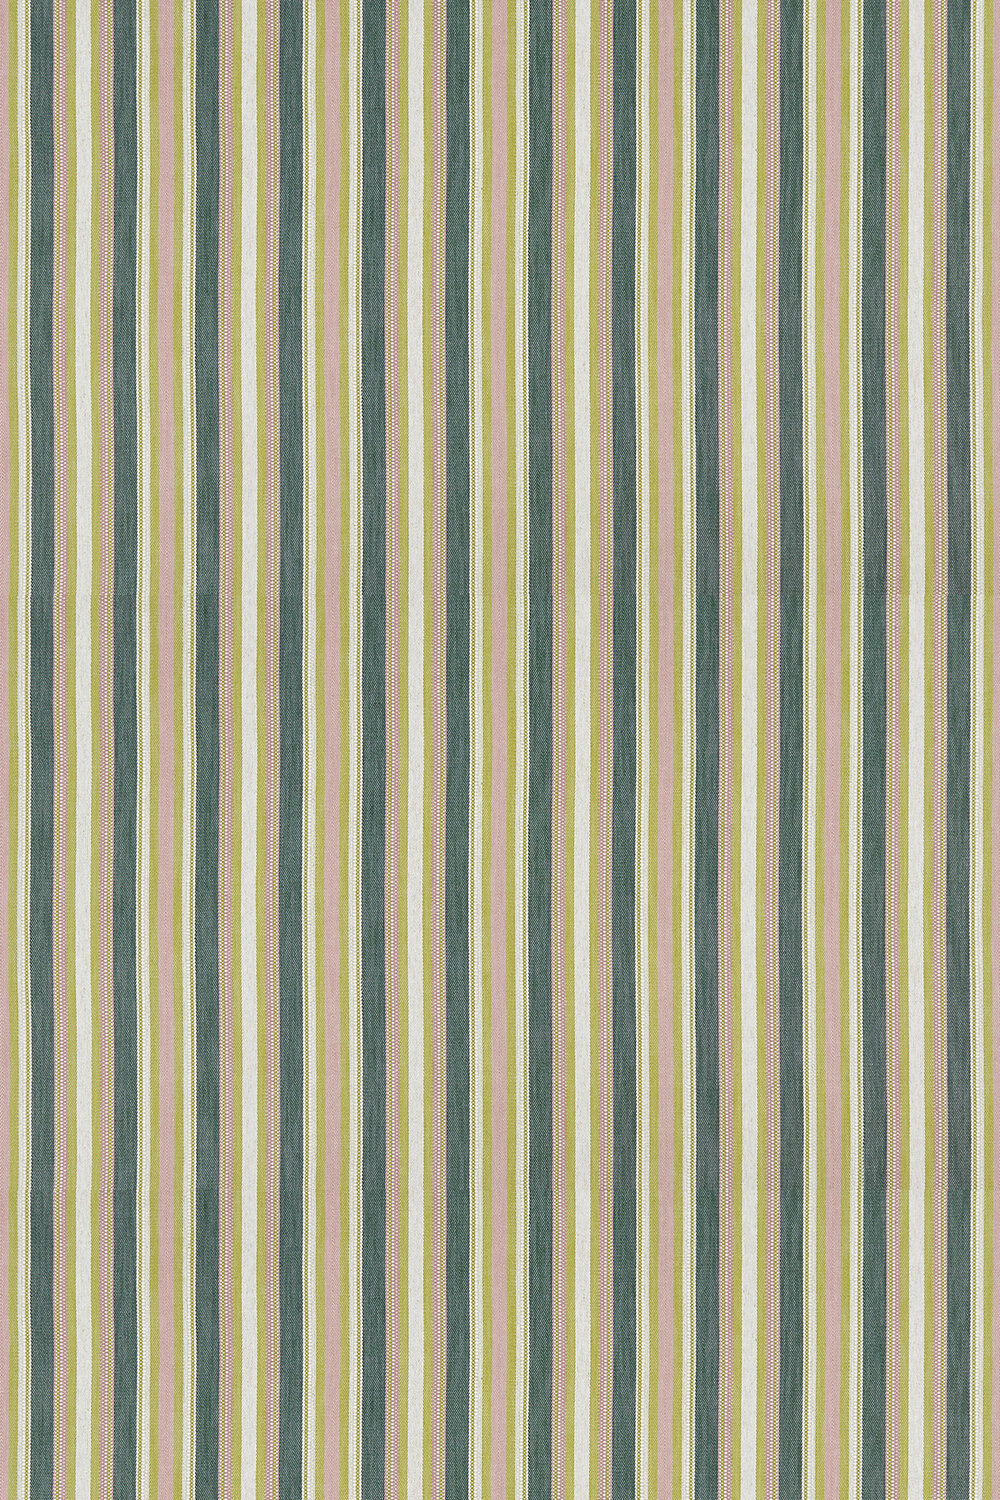 Clarke & Clarke Ziba Apple / Blush Fabric - Product code: F1352-01